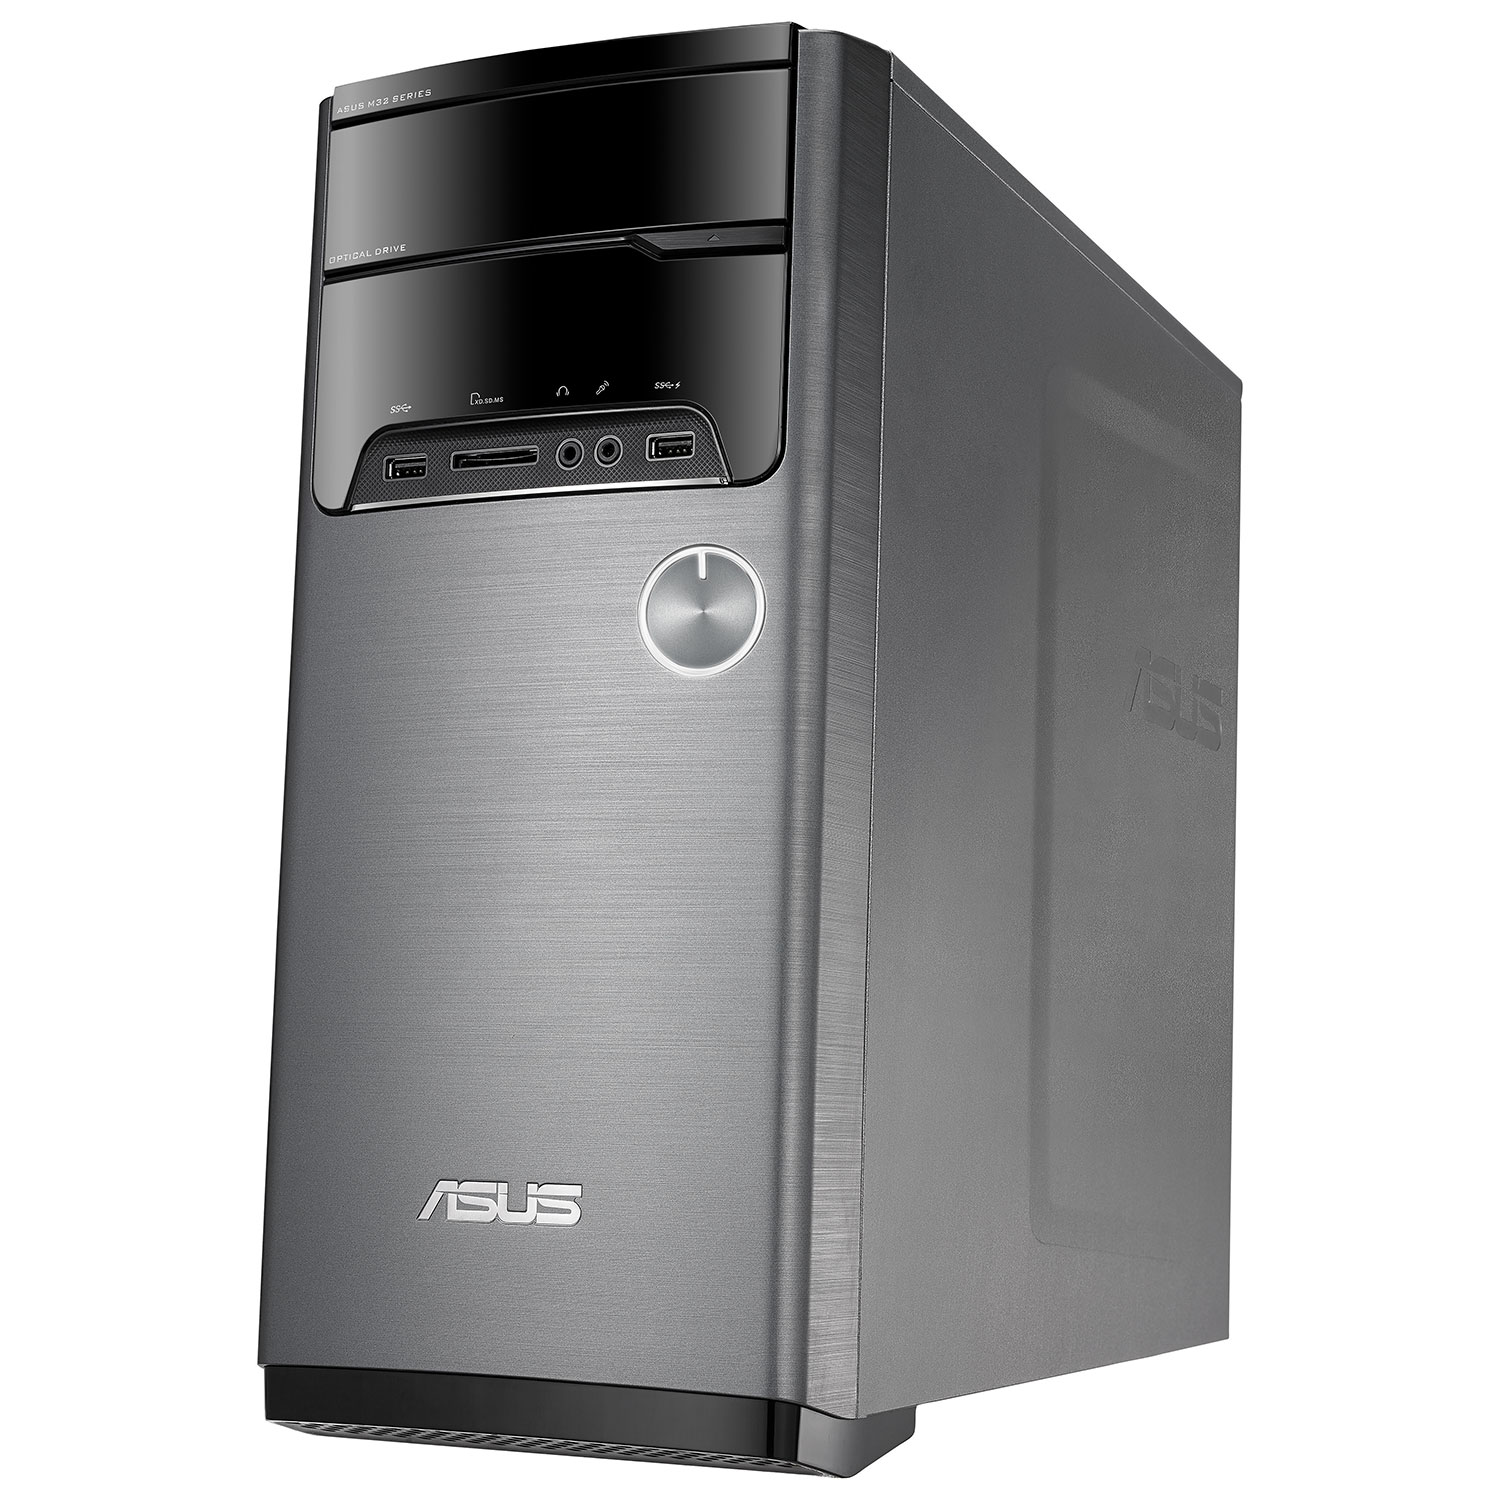 ASUS VivoPC Desktop PC